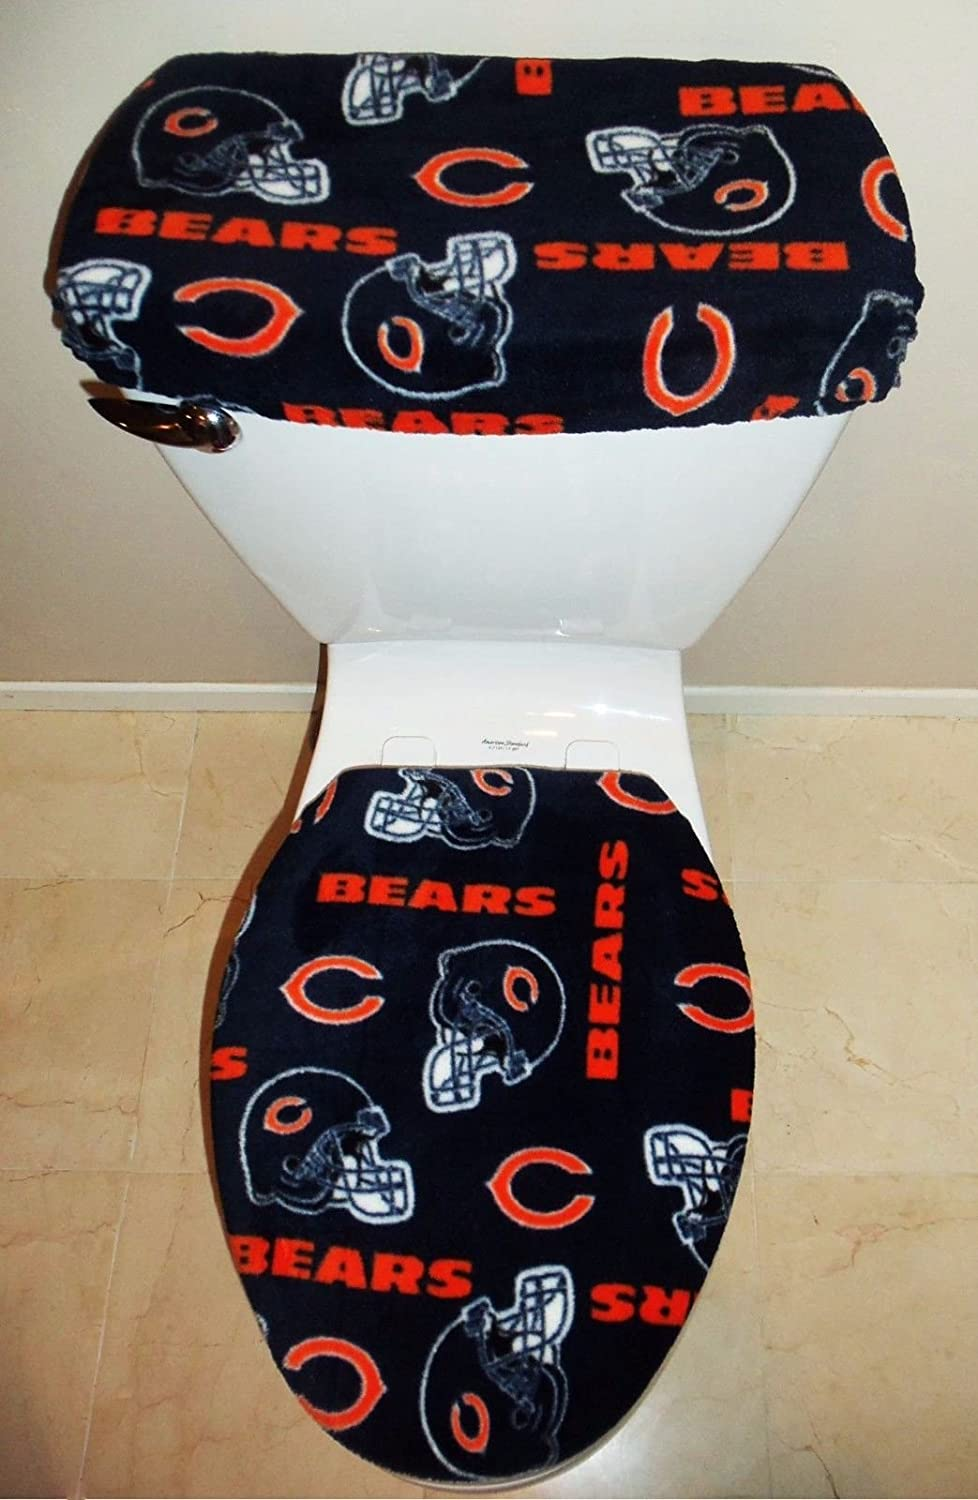 Wondrous Nfl Chicago Bears Fleece Fabric Toilet Seat Cover Set Bathroom Accessories Ibusinesslaw Wood Chair Design Ideas Ibusinesslaworg